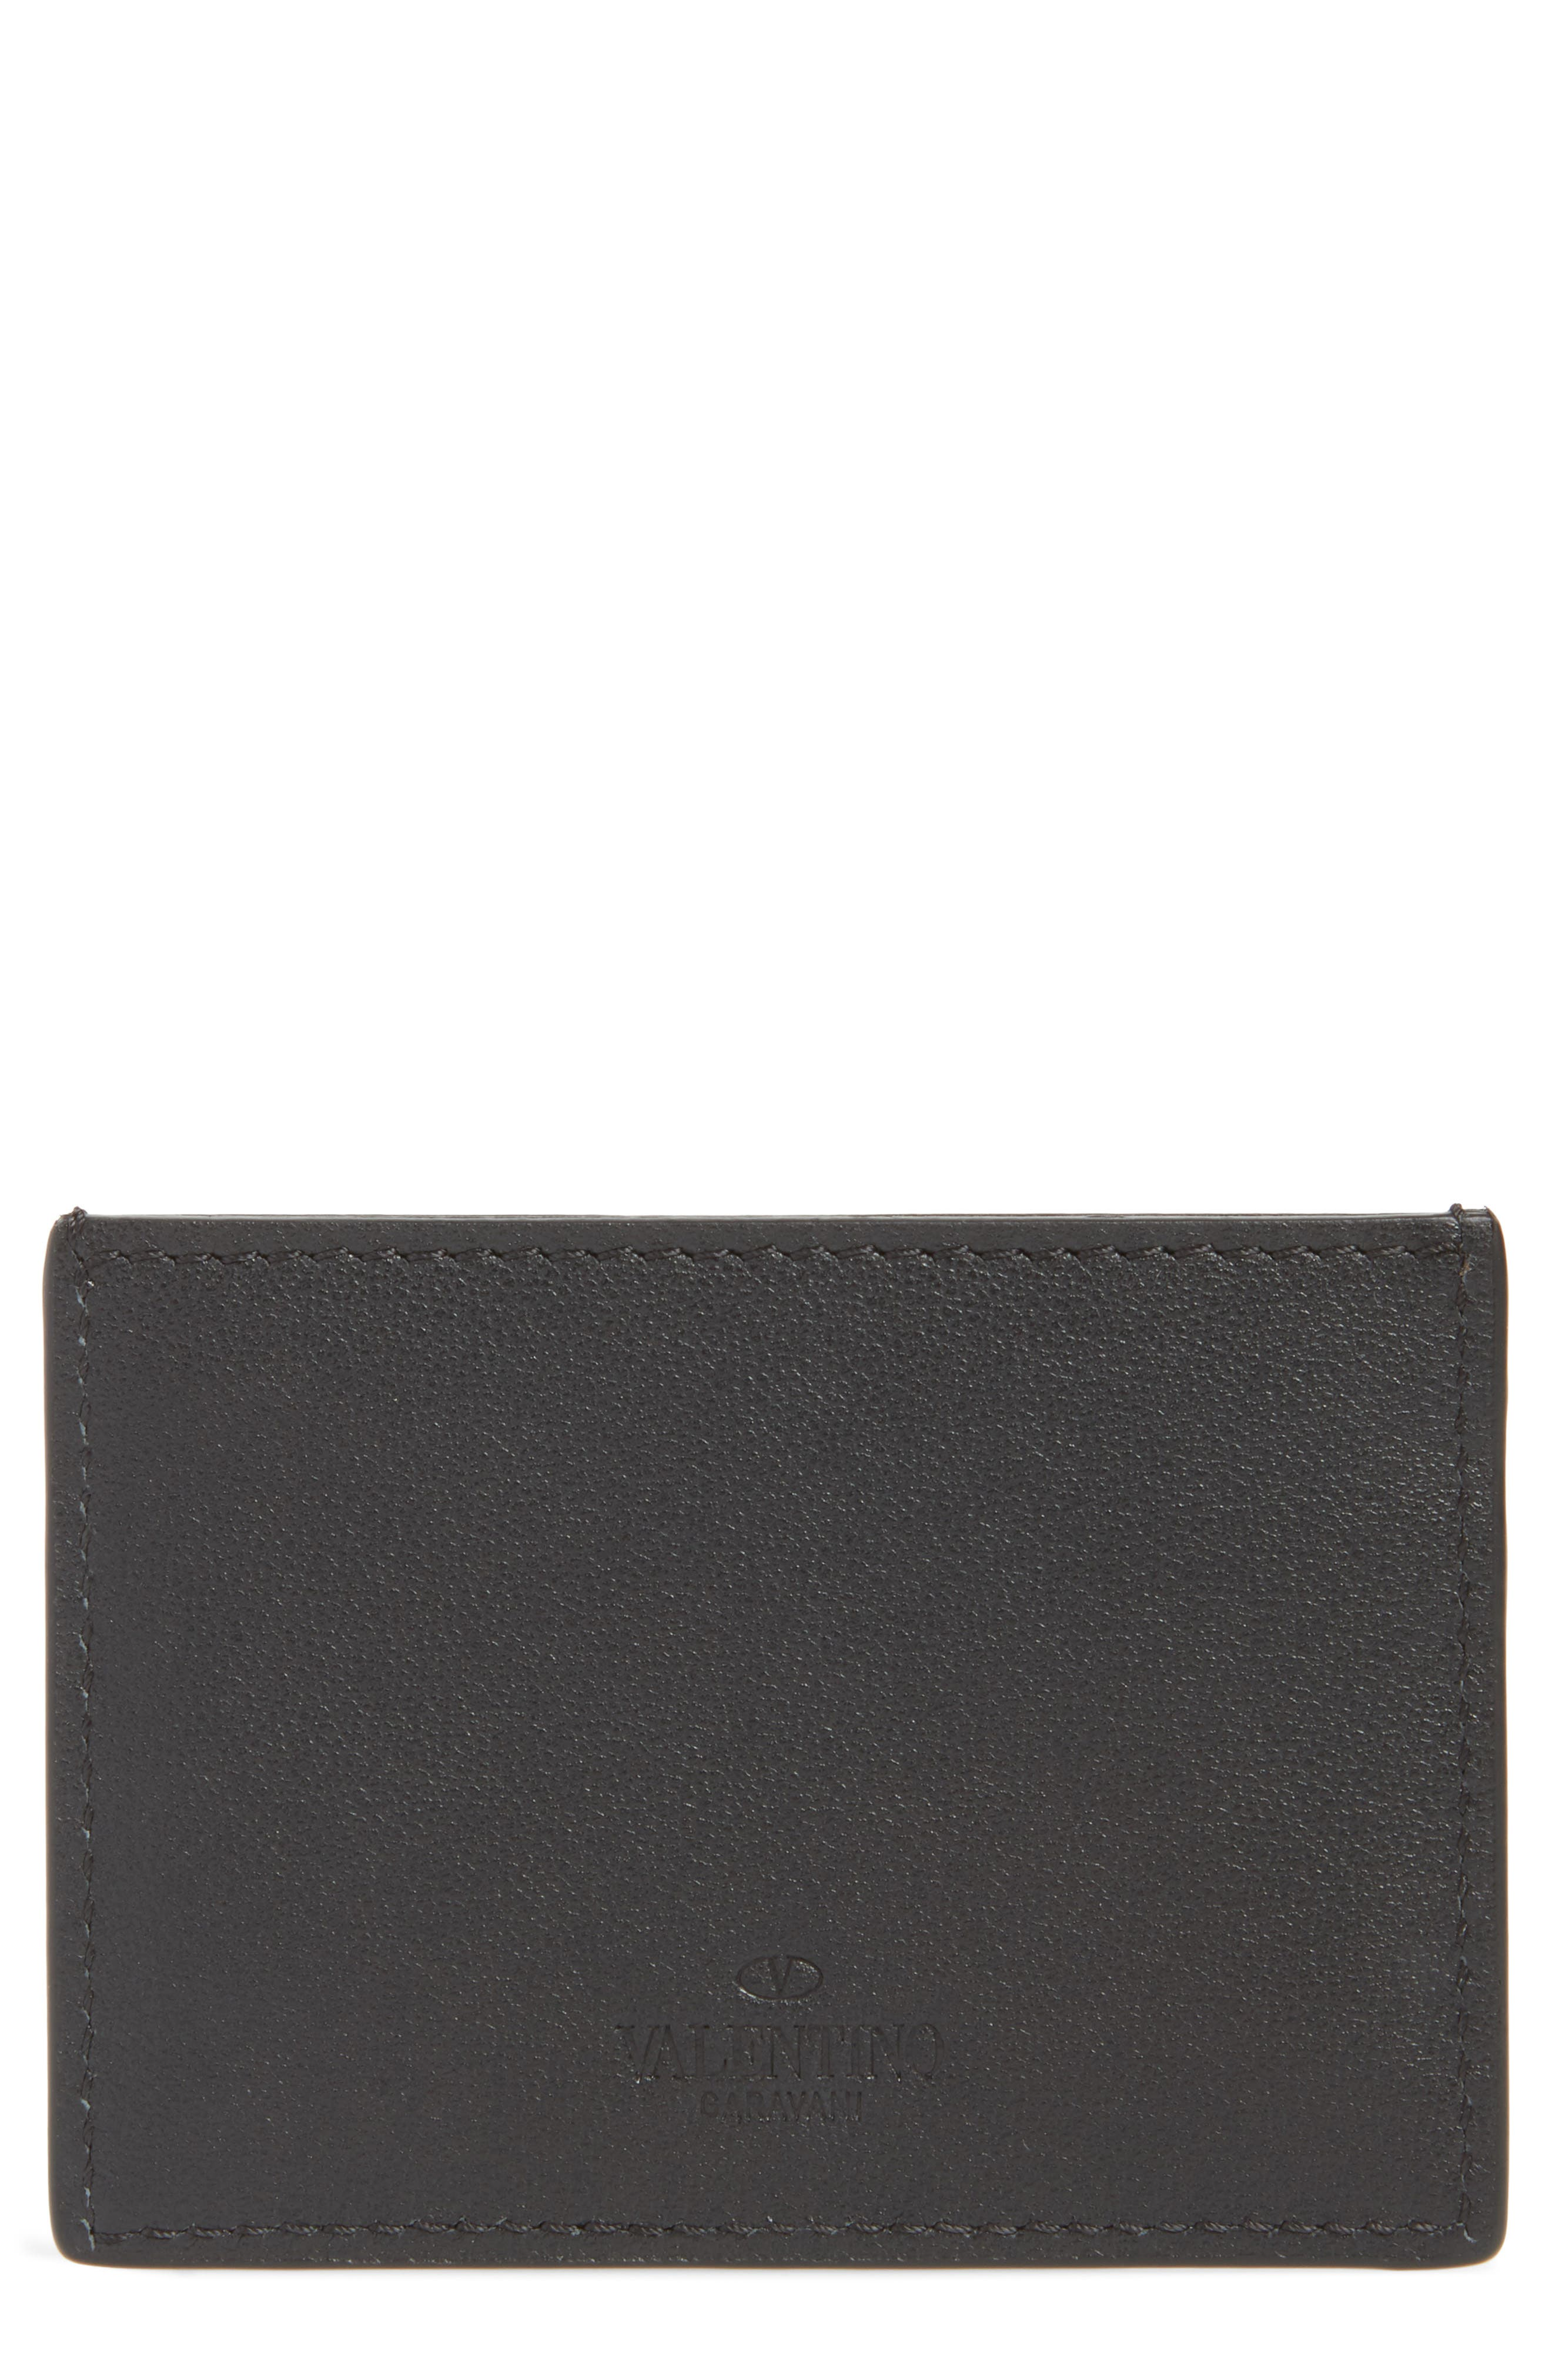 GARAVANI Stud Leather Card Case,                             Alternate thumbnail 2, color,                             BLACK